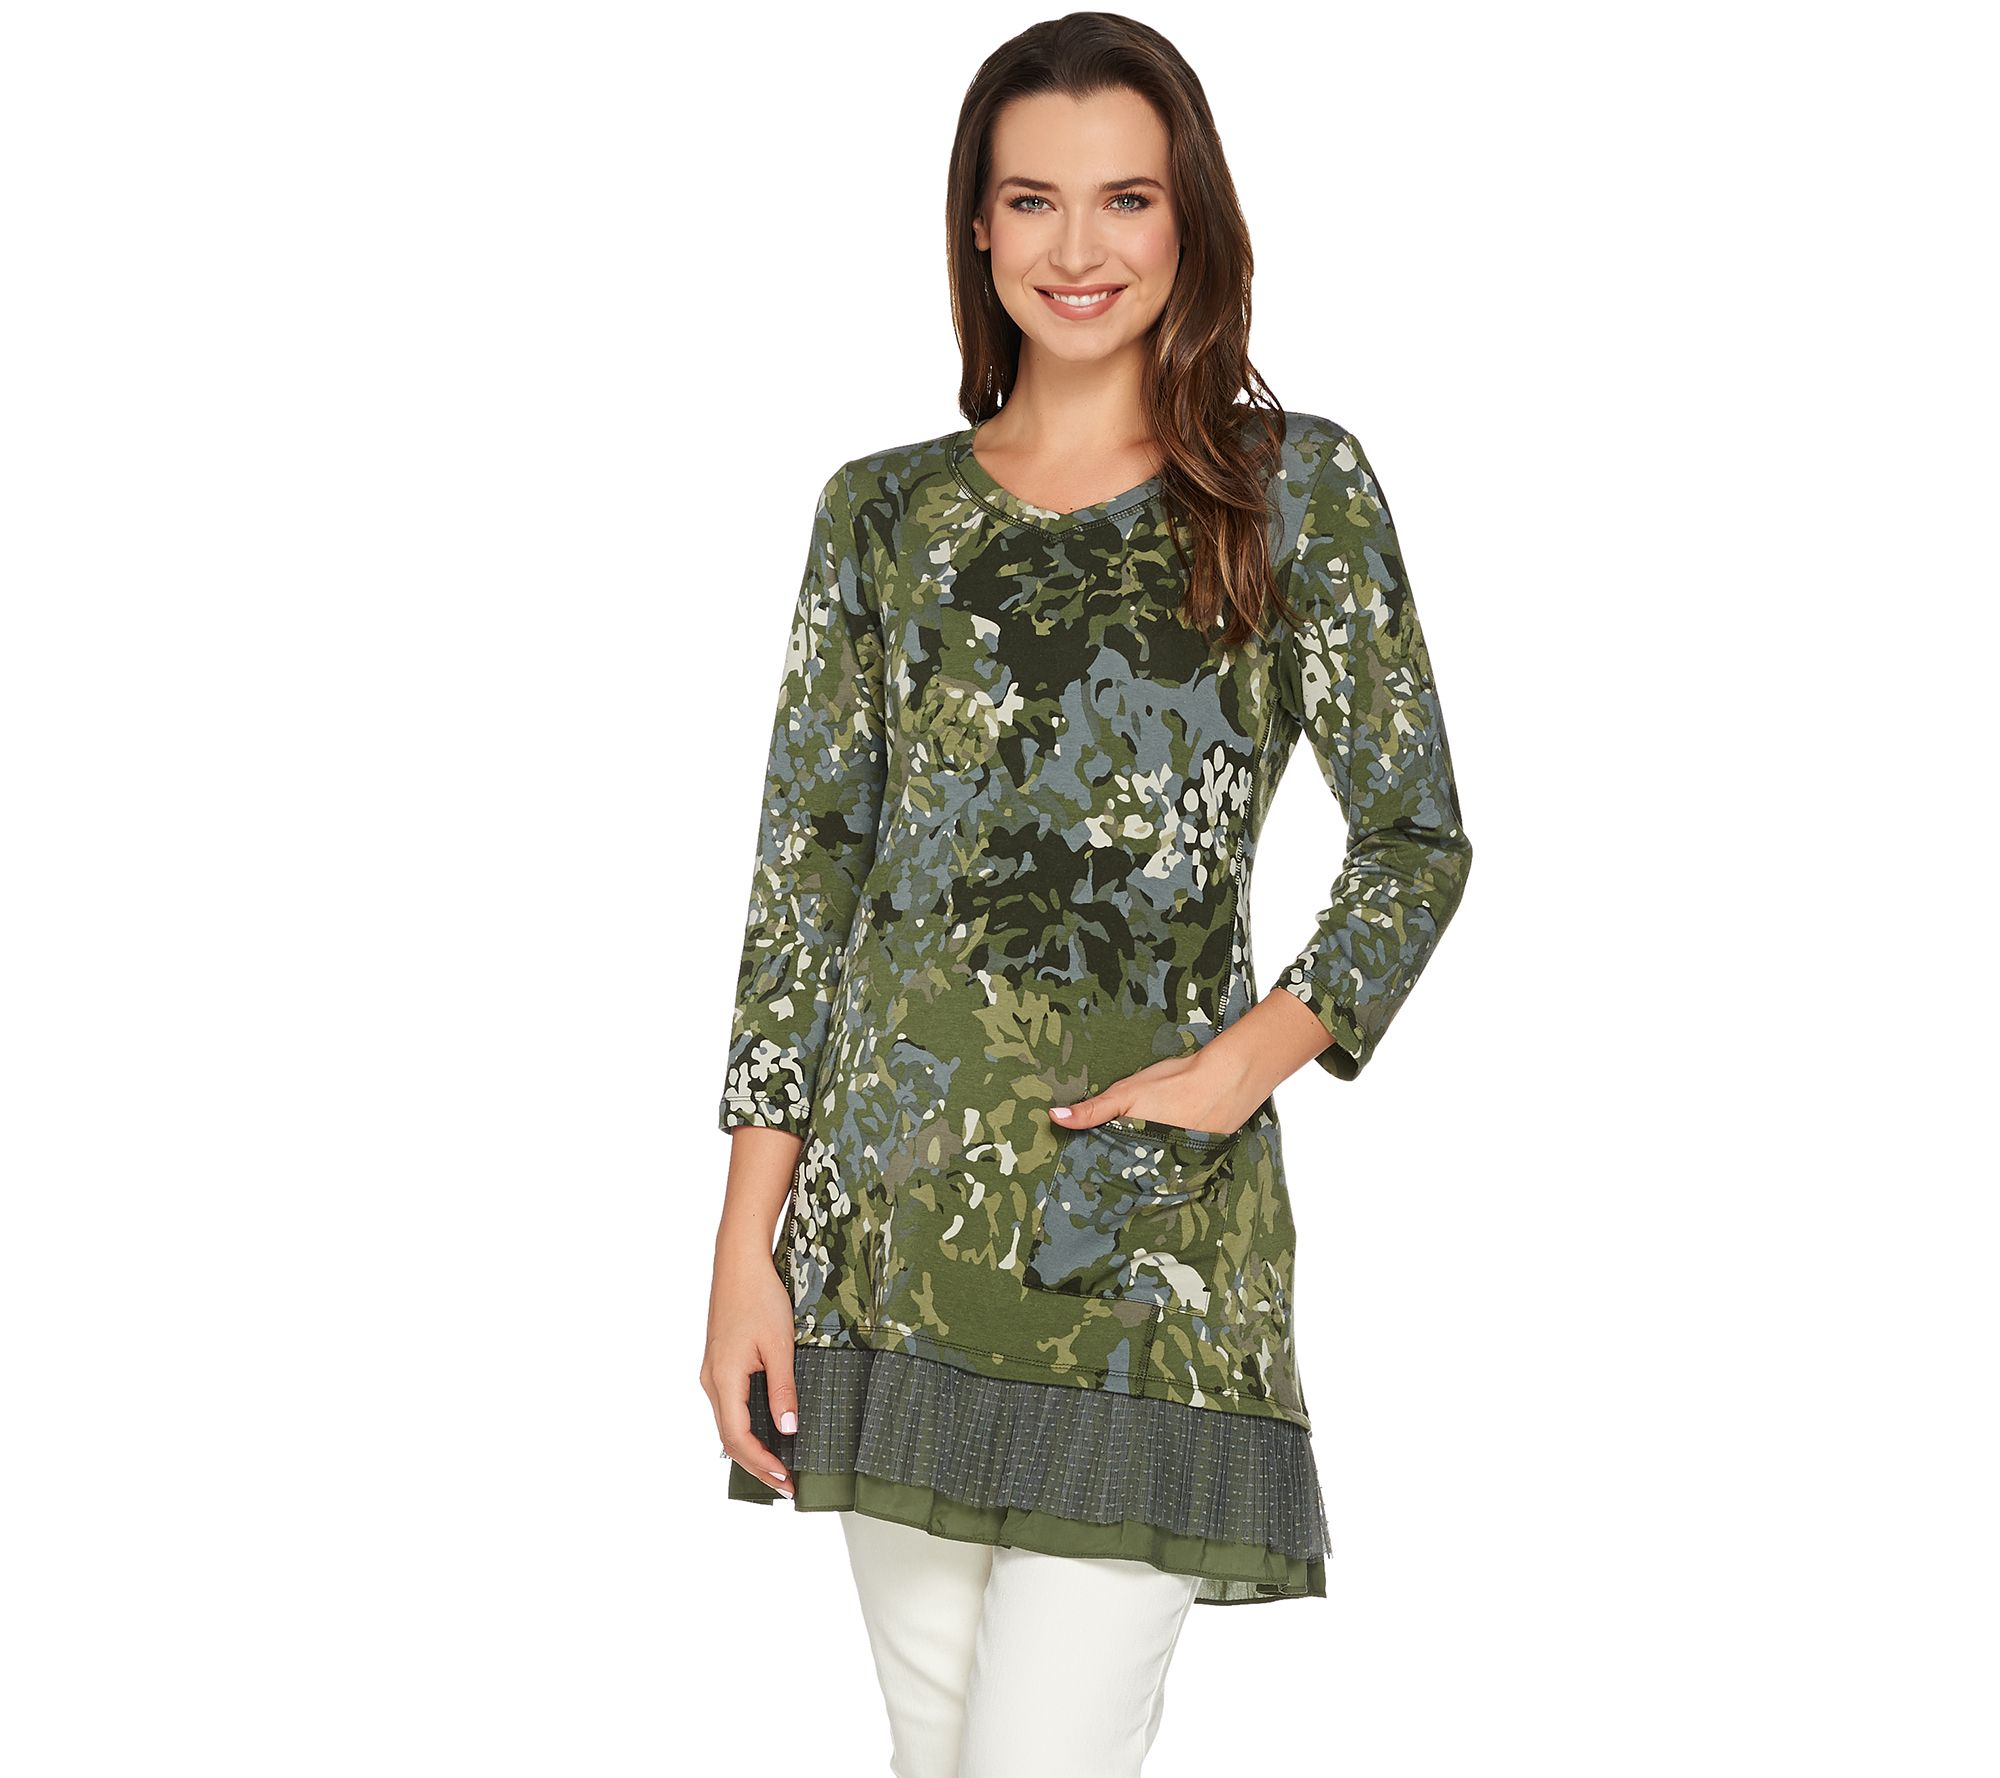 LOGO Lounge by Lori Goldstein French Terry Printed Top w/ Pleated ...